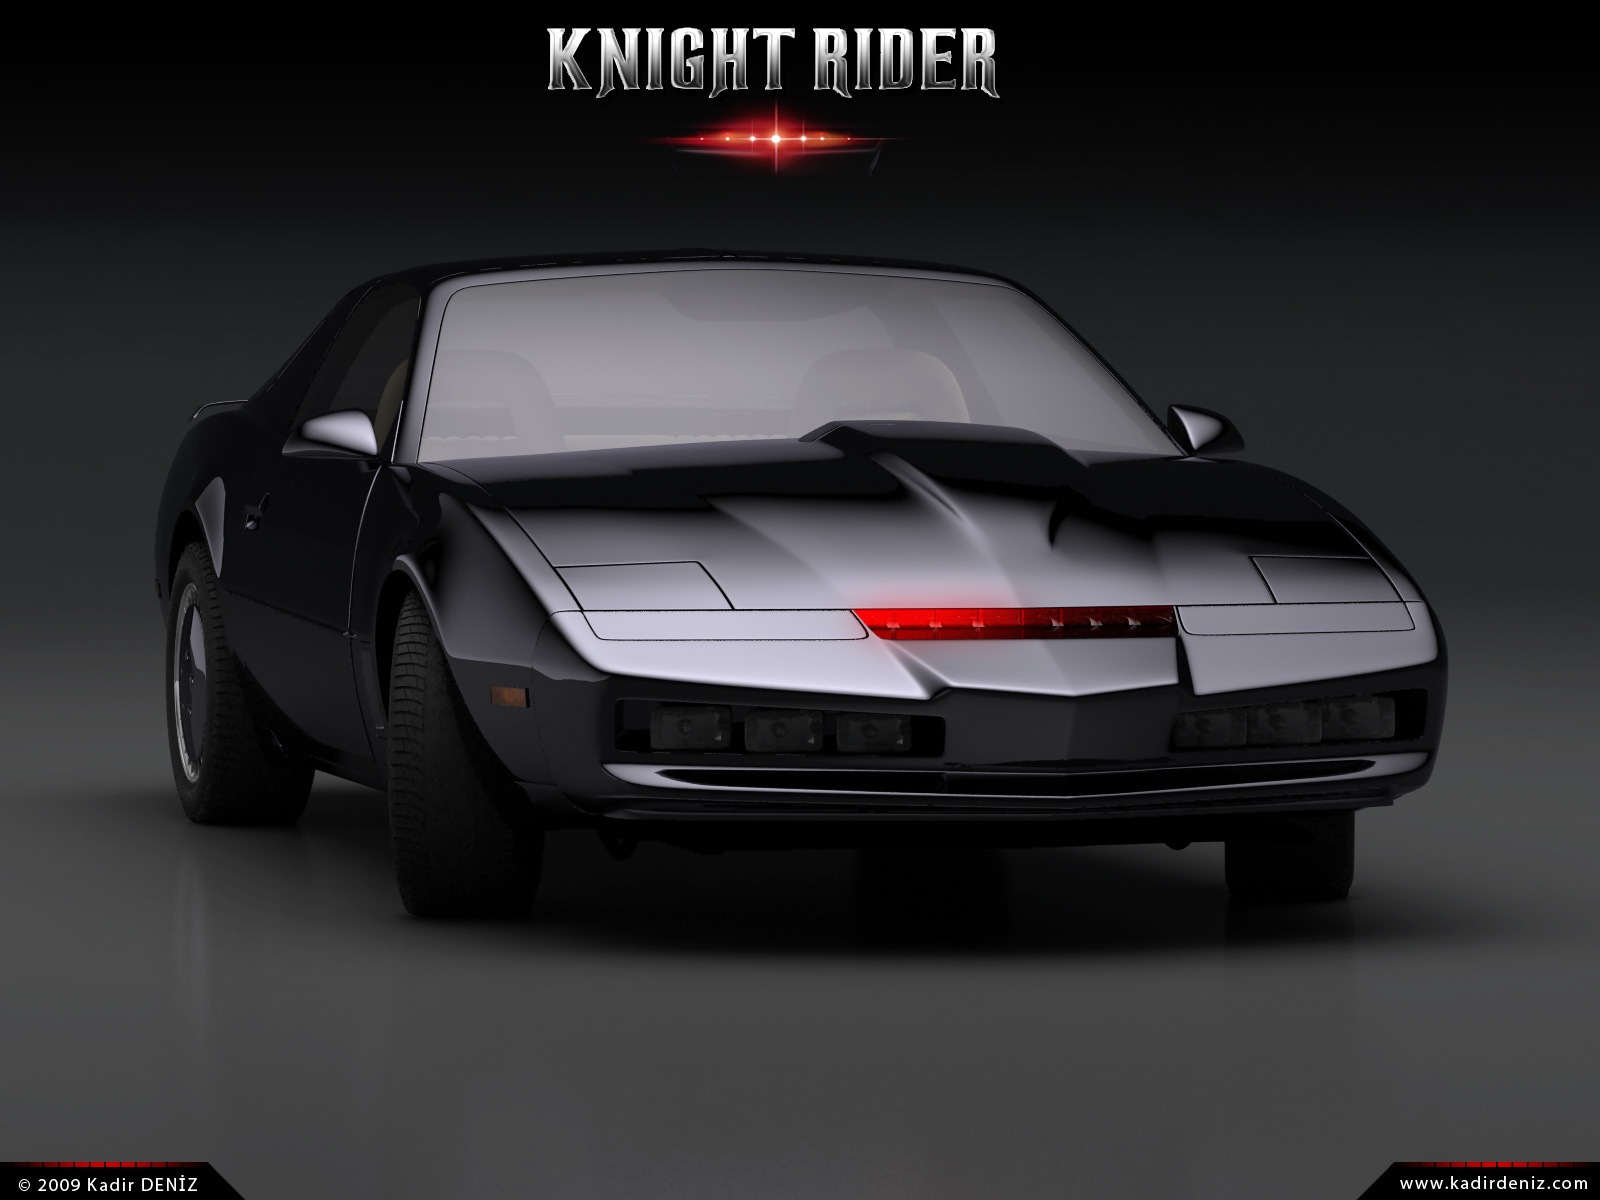 Knight Rider Animated Wallpaper Old vs New Kni 1600x1200